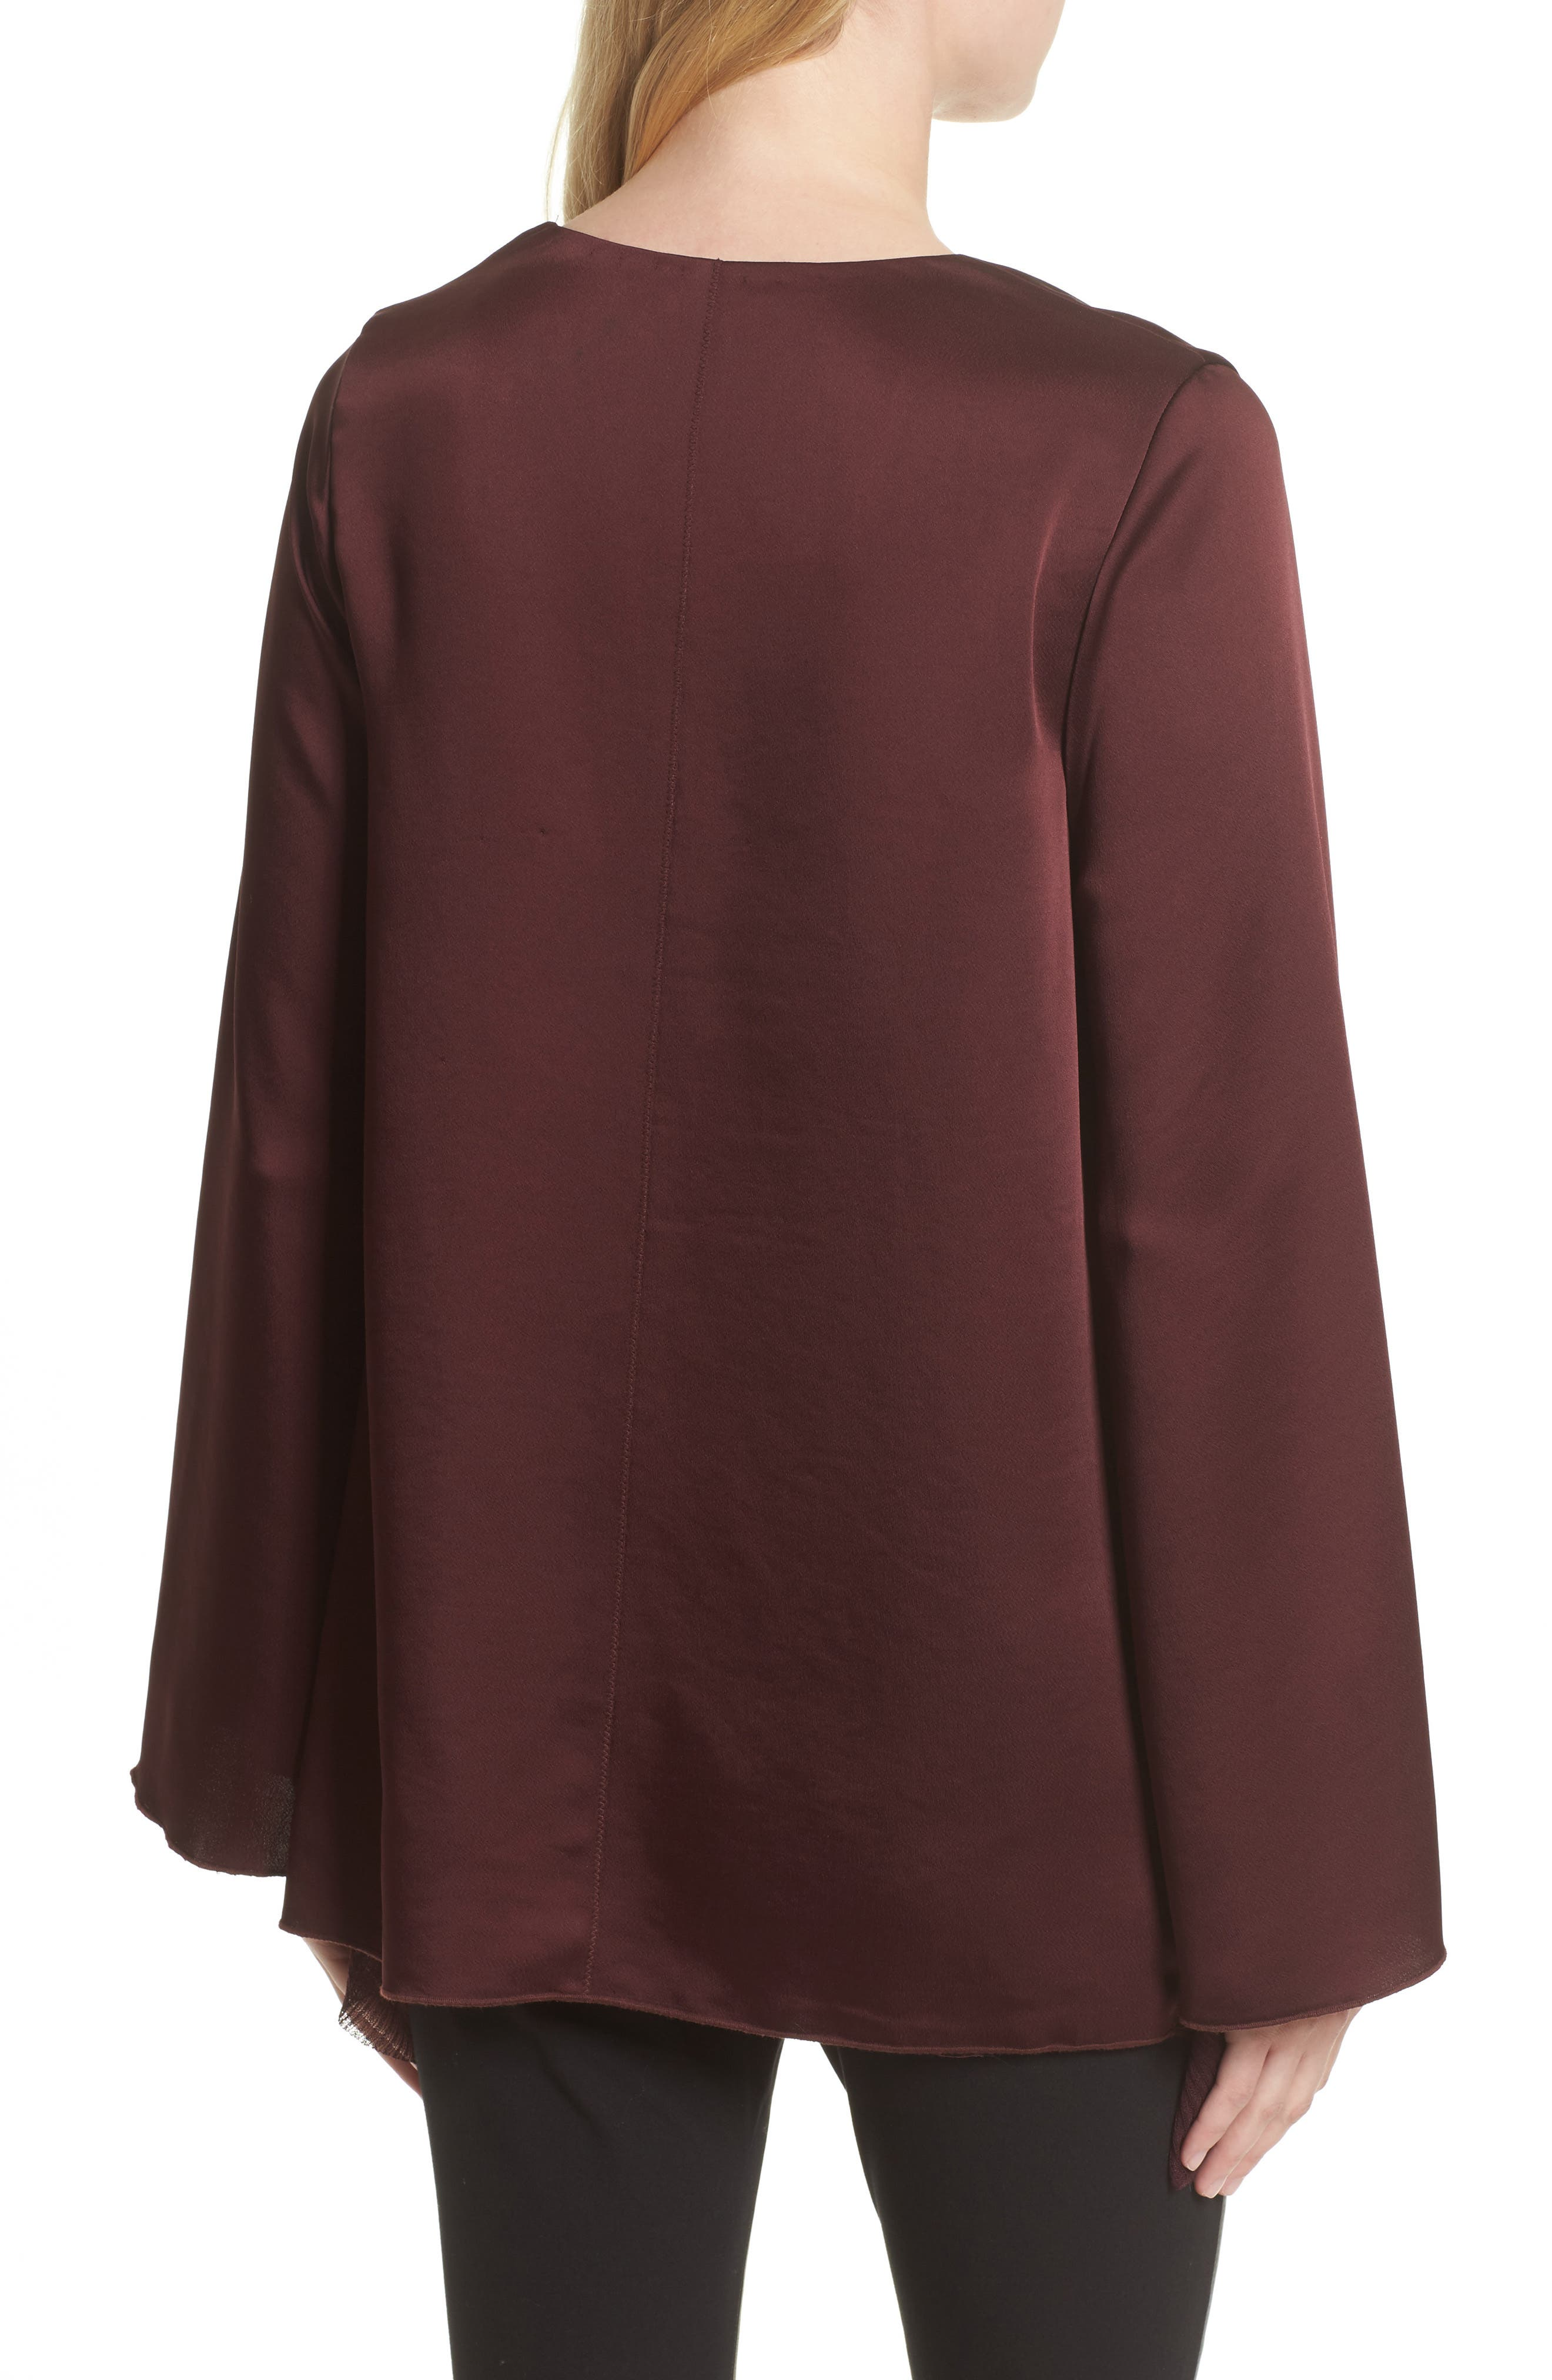 Alternate Image 2  - Elizabeth and James Heath Ruffle Hem Top (Nordstrom Exclusive)